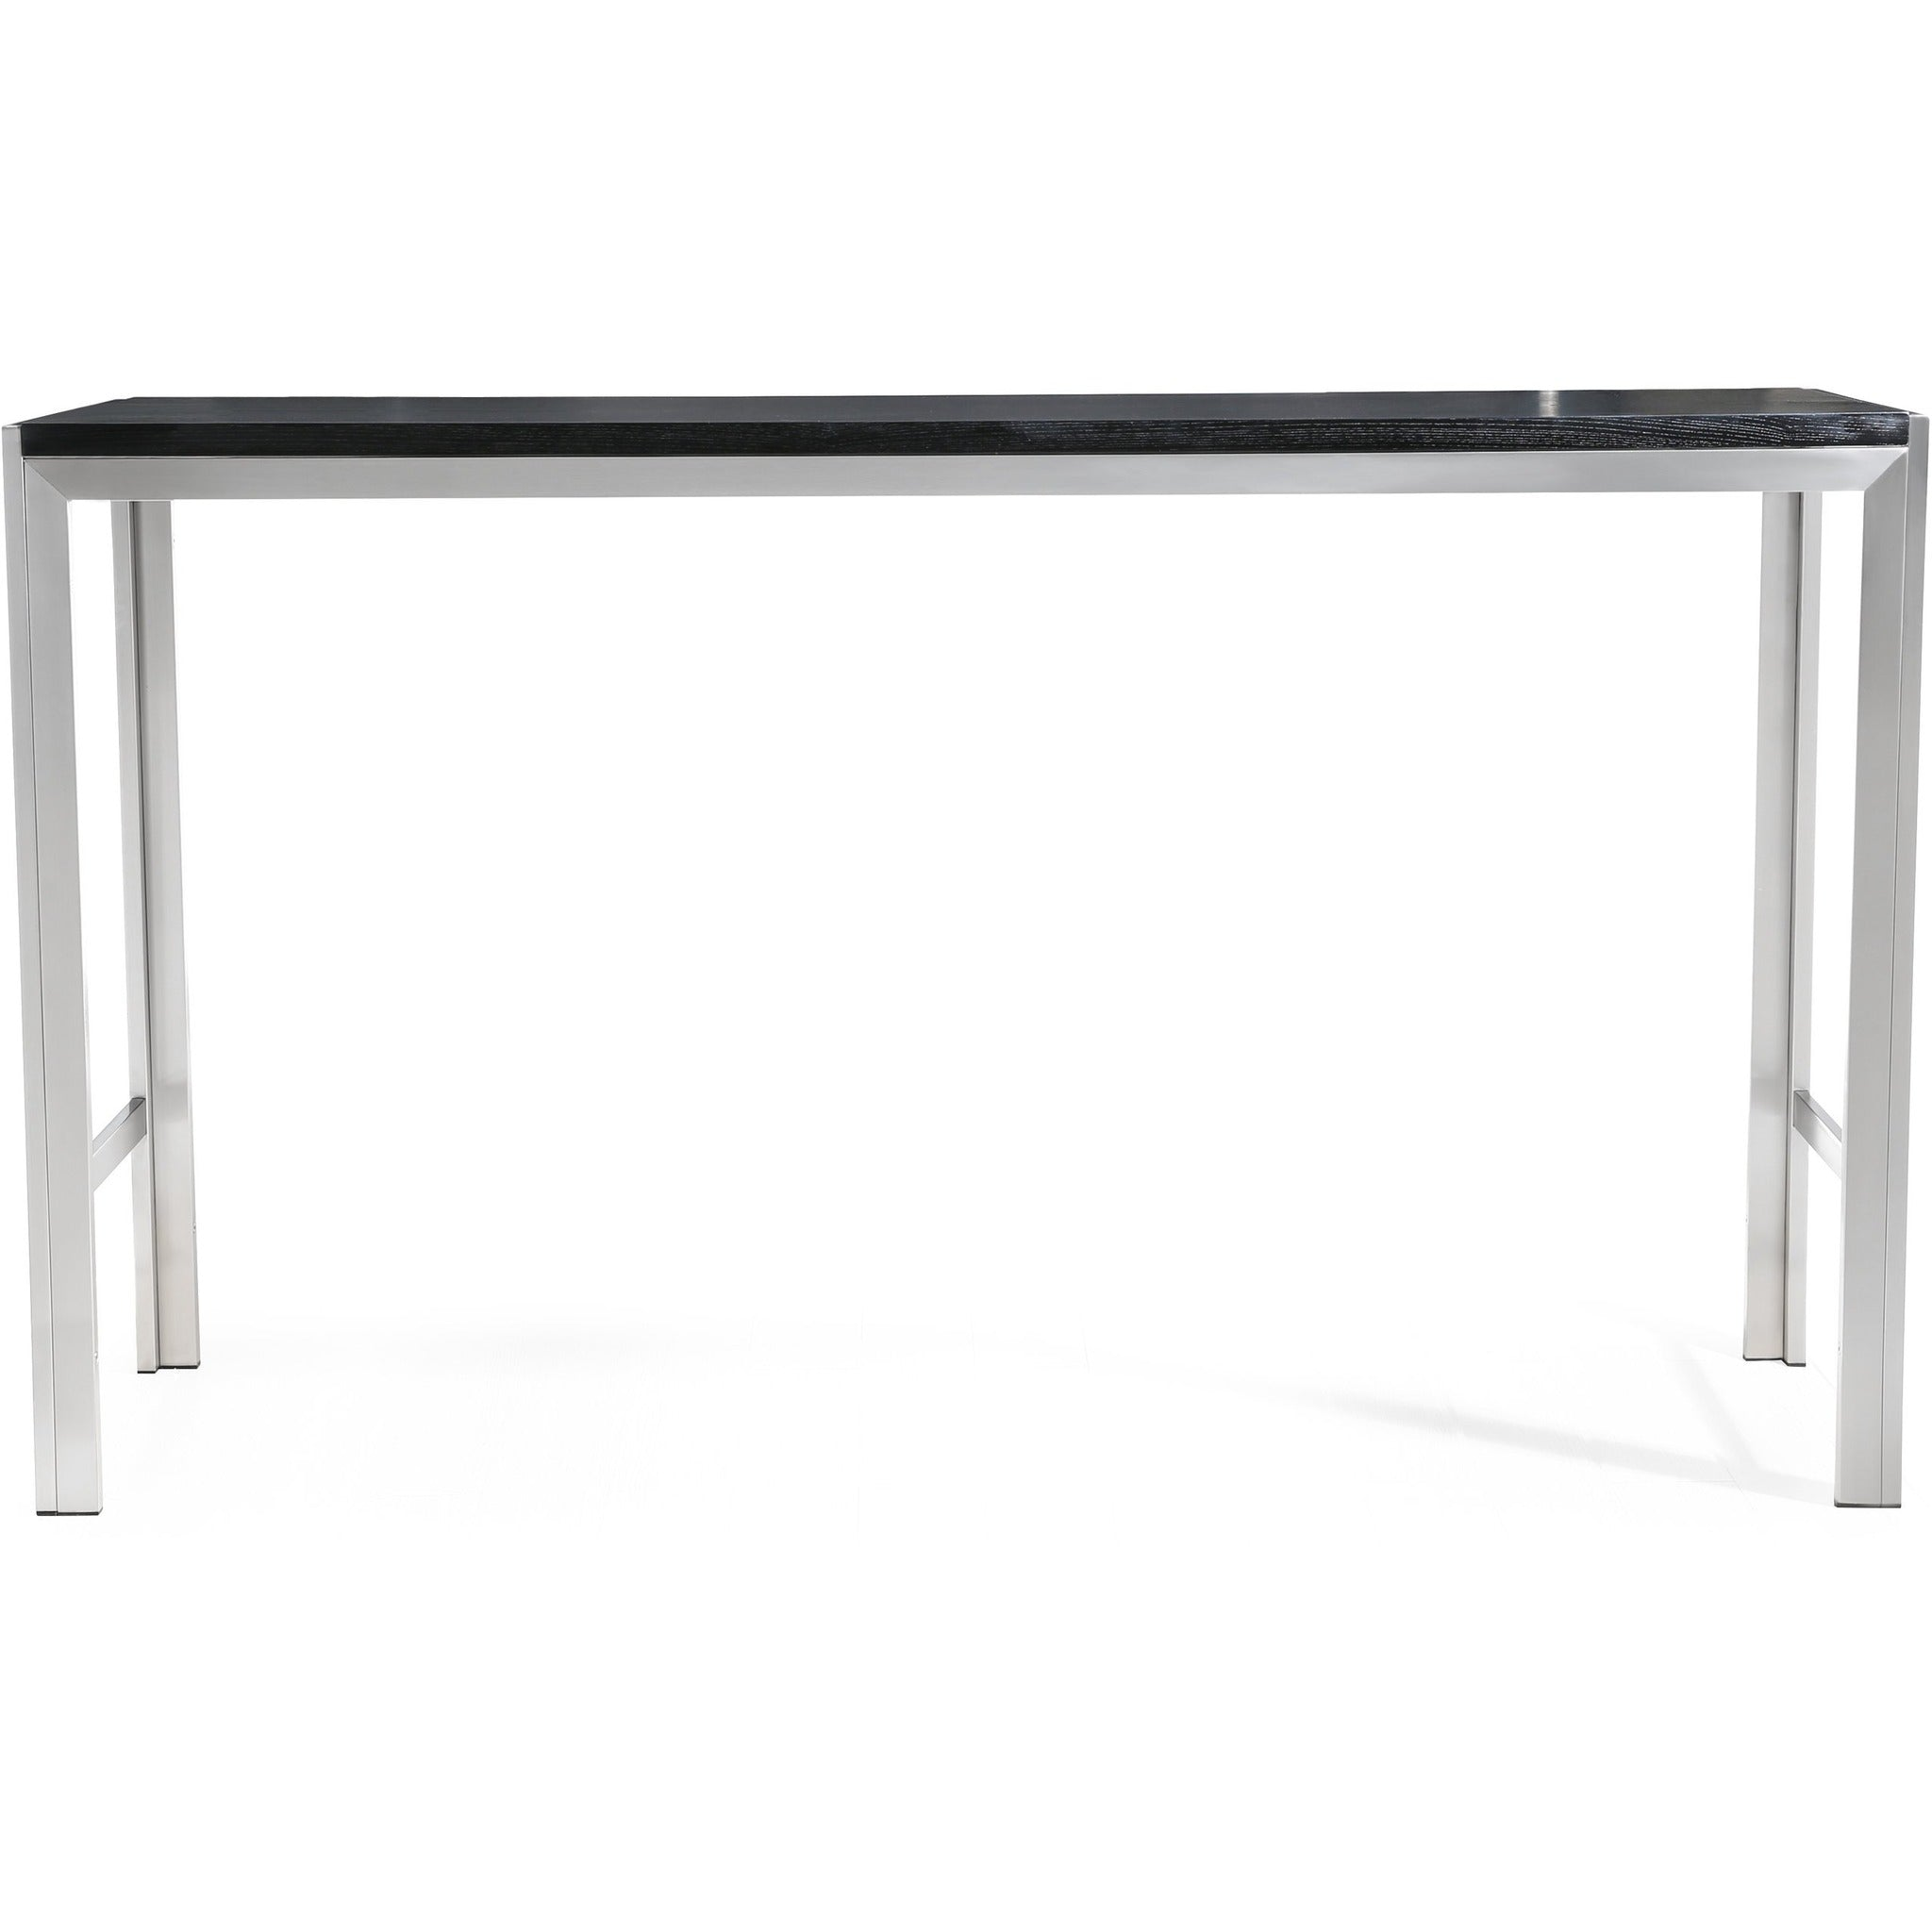 ... TOV Furniture Modern Ludlow Bar Table   TOV K3680   TOV Furniture, ...